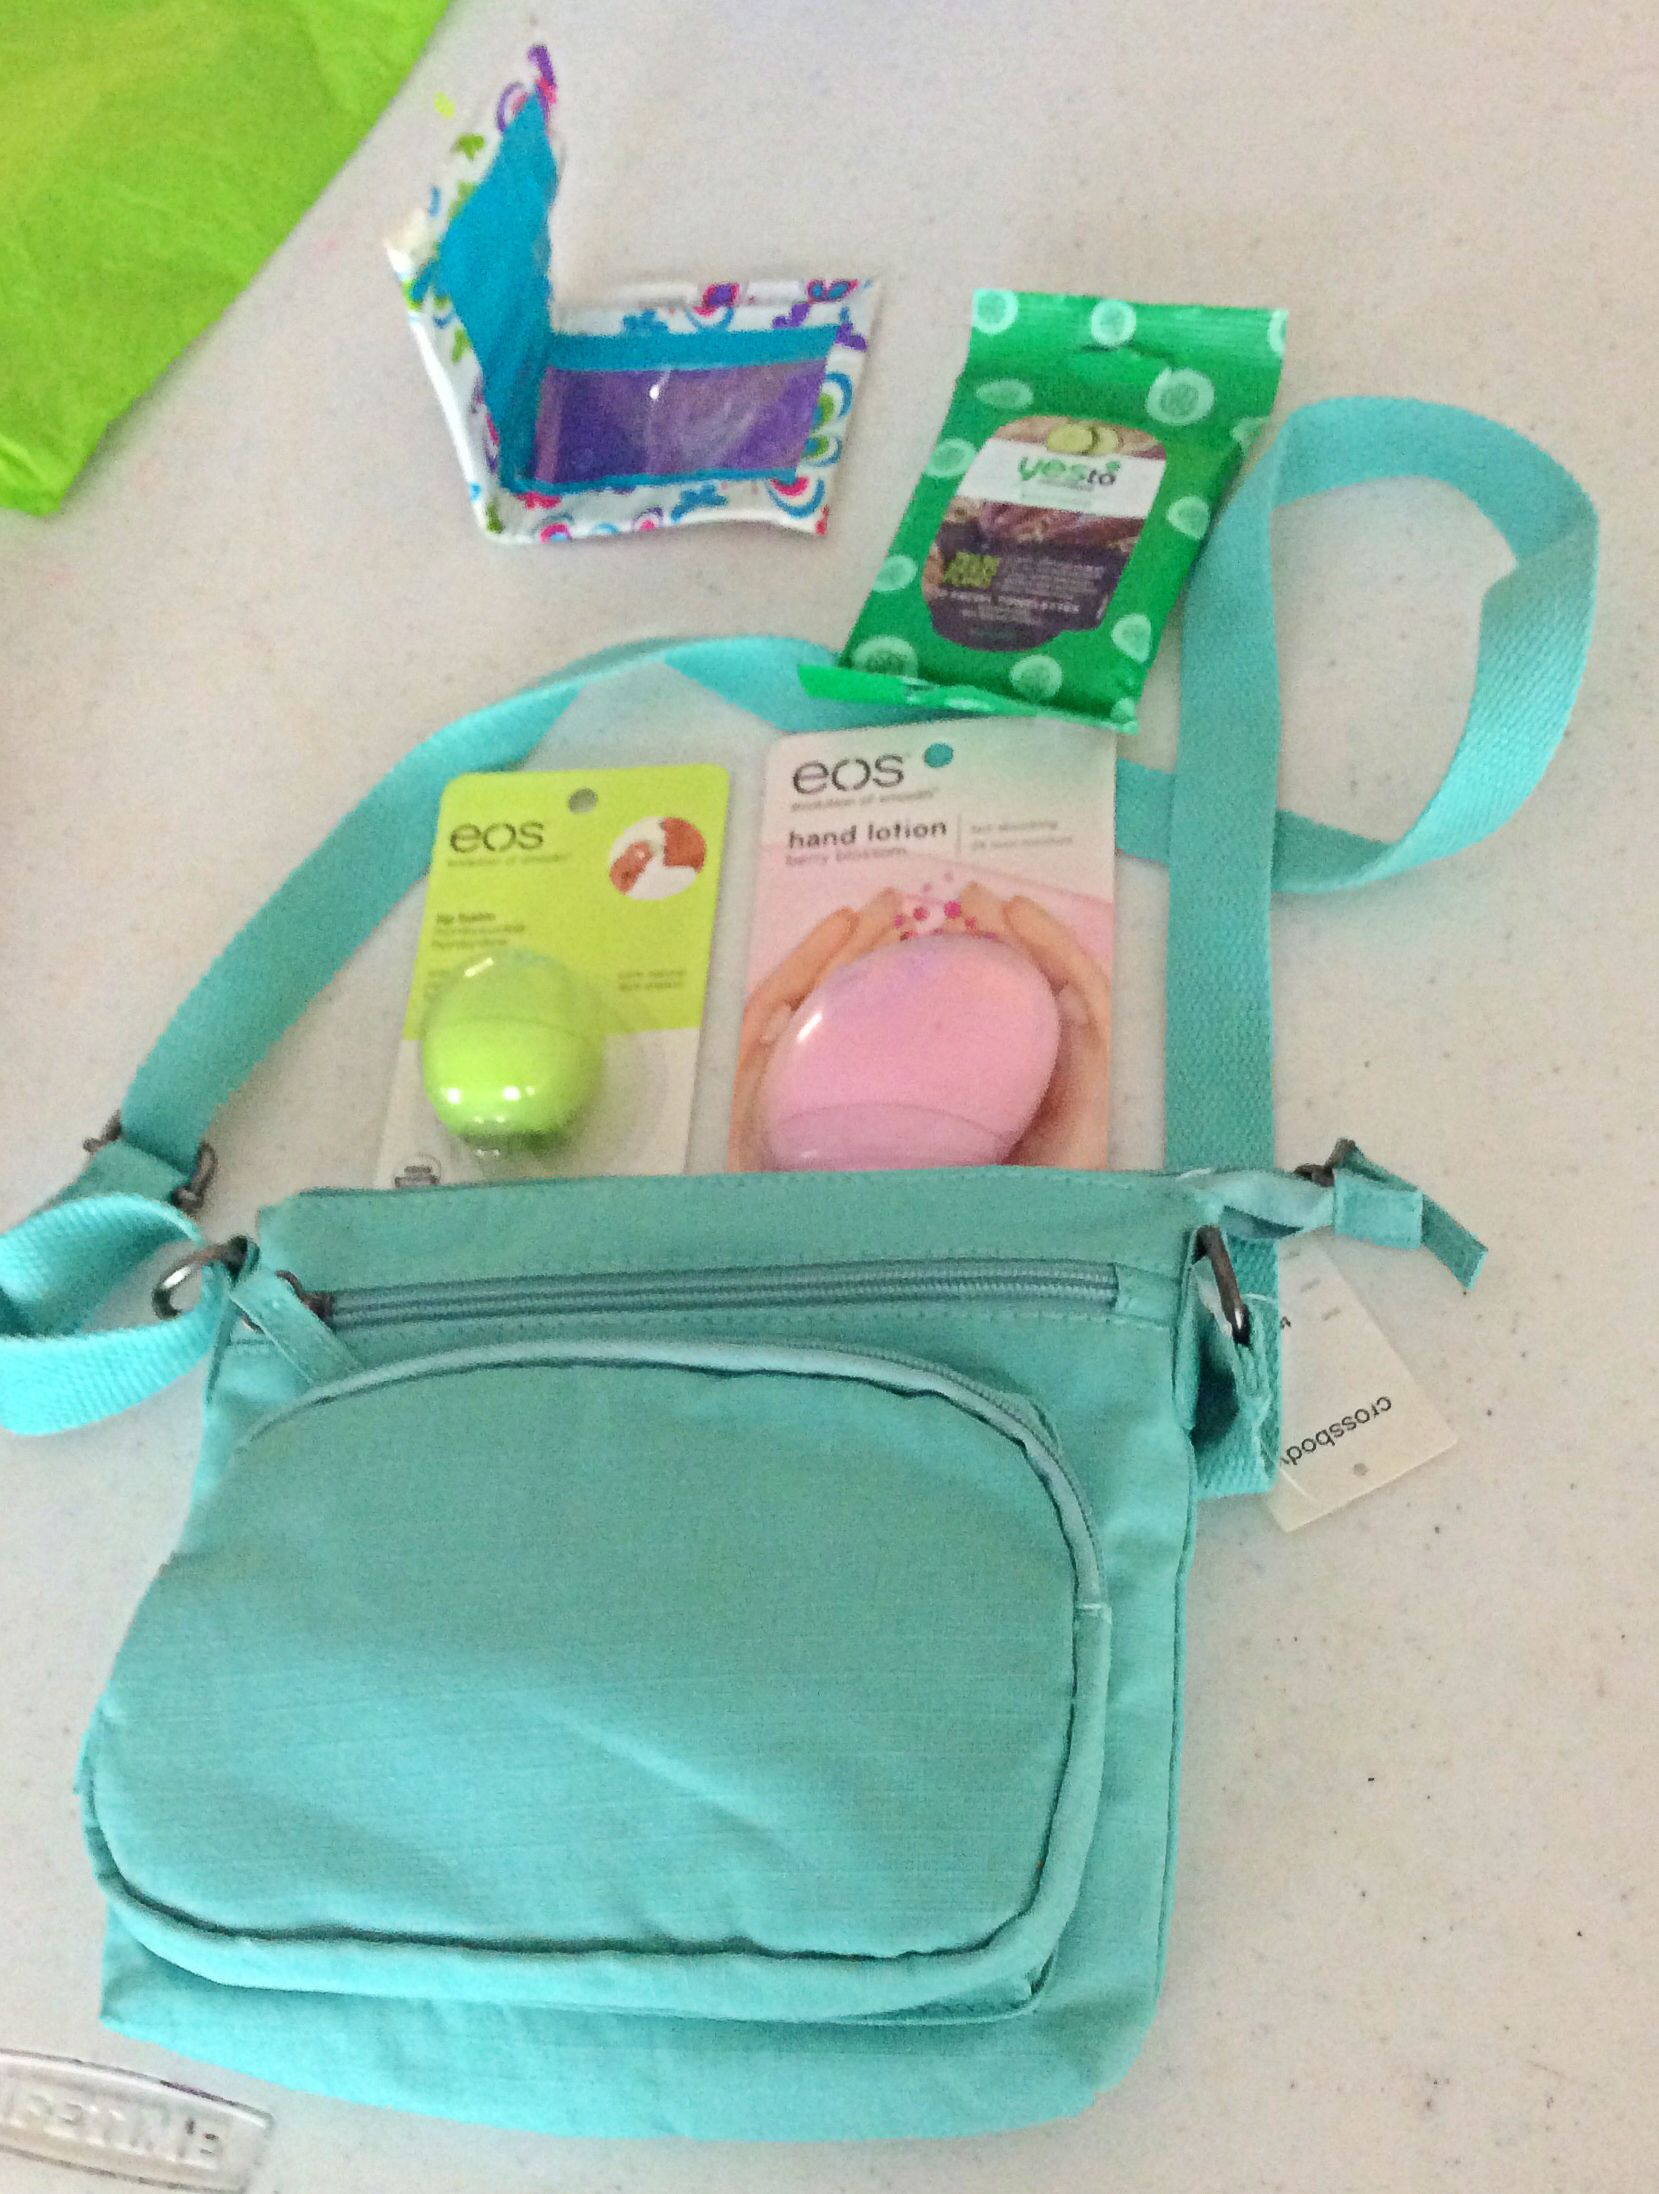 Teen Birthday Gift DIY Gifts For Girls Target Purse 10 Duct Tape Wallet Yes To Cucumbers Facial Wipes Travel Pack 3 EOS Lip Balm